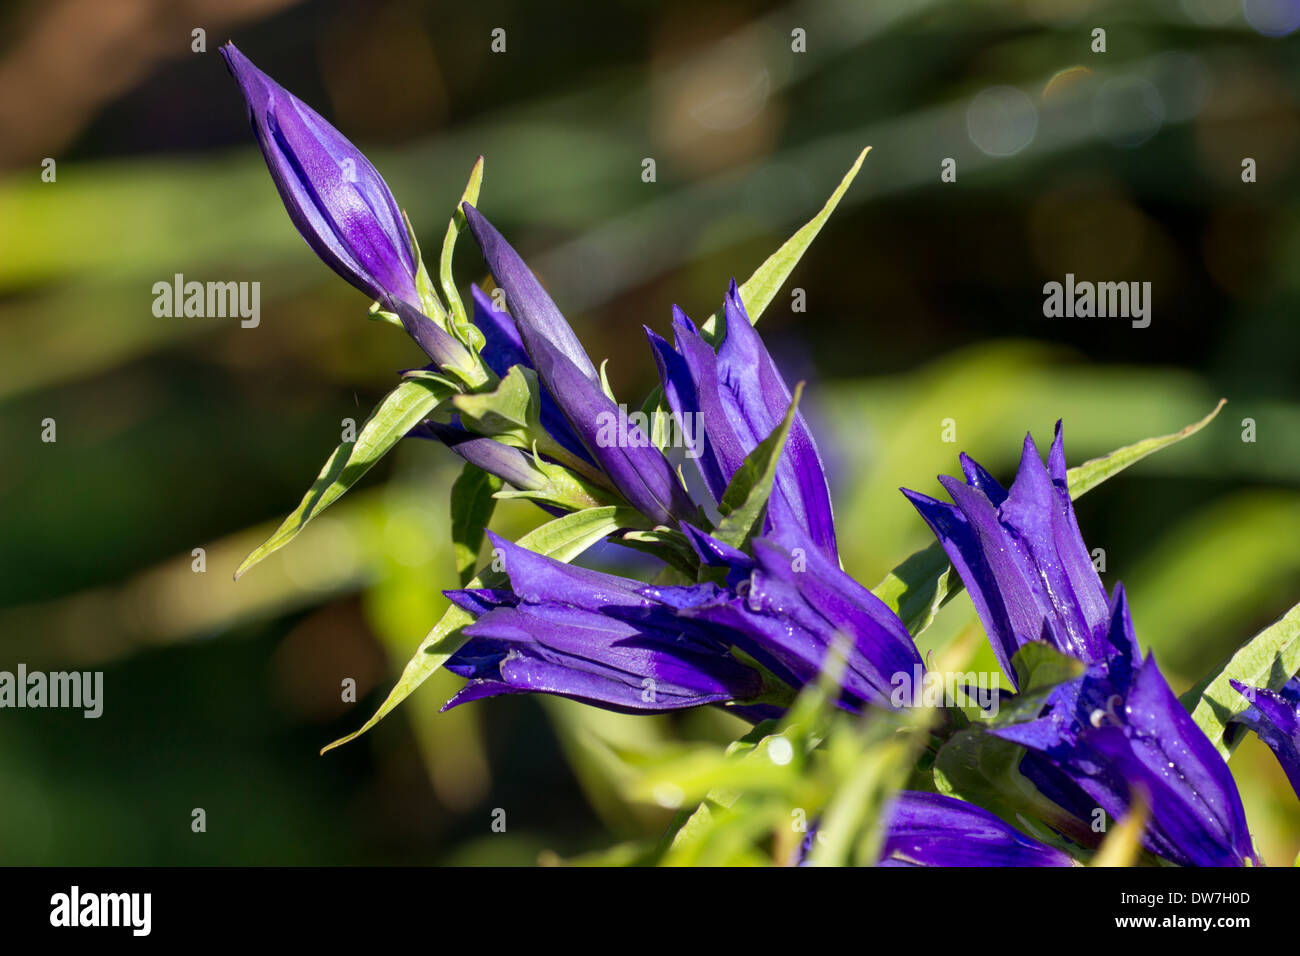 Close up of flowers of willow gentian, Gentiana asclepiadea. - Stock Image